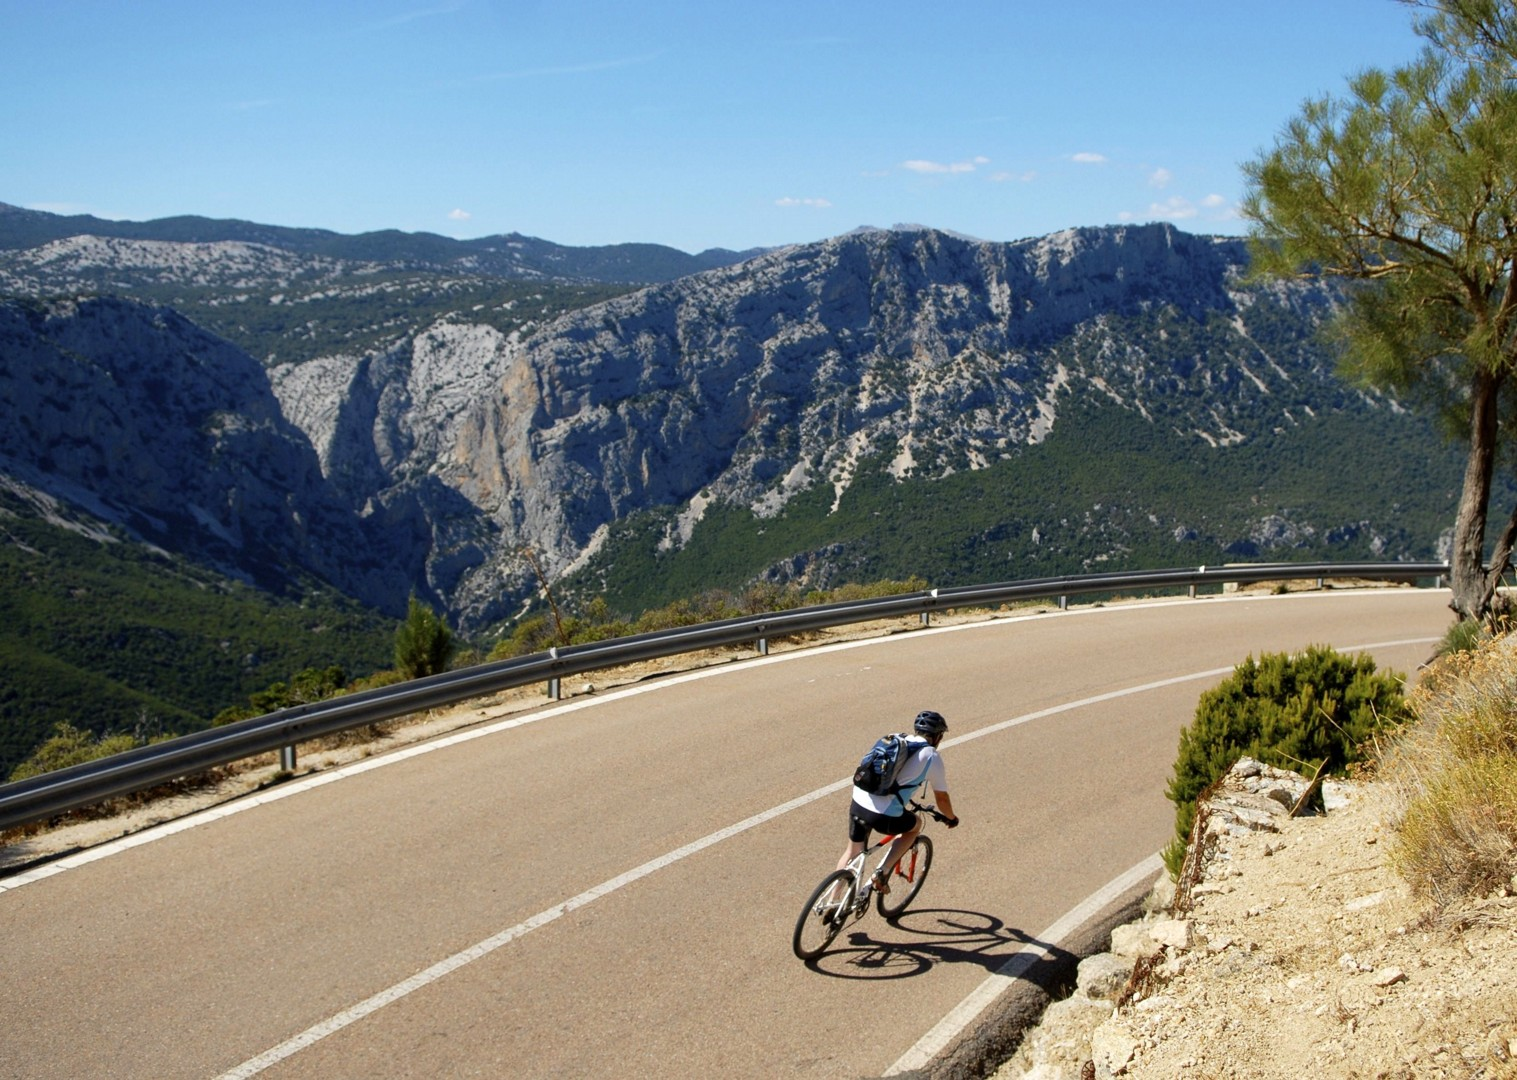 mountains-sardinia-coast-to-coast.jpg - Italy - Sardinia - Coast to Coast - Self-Guided Leisure Cycling Holiday - Italia Leisure and Family Cycling